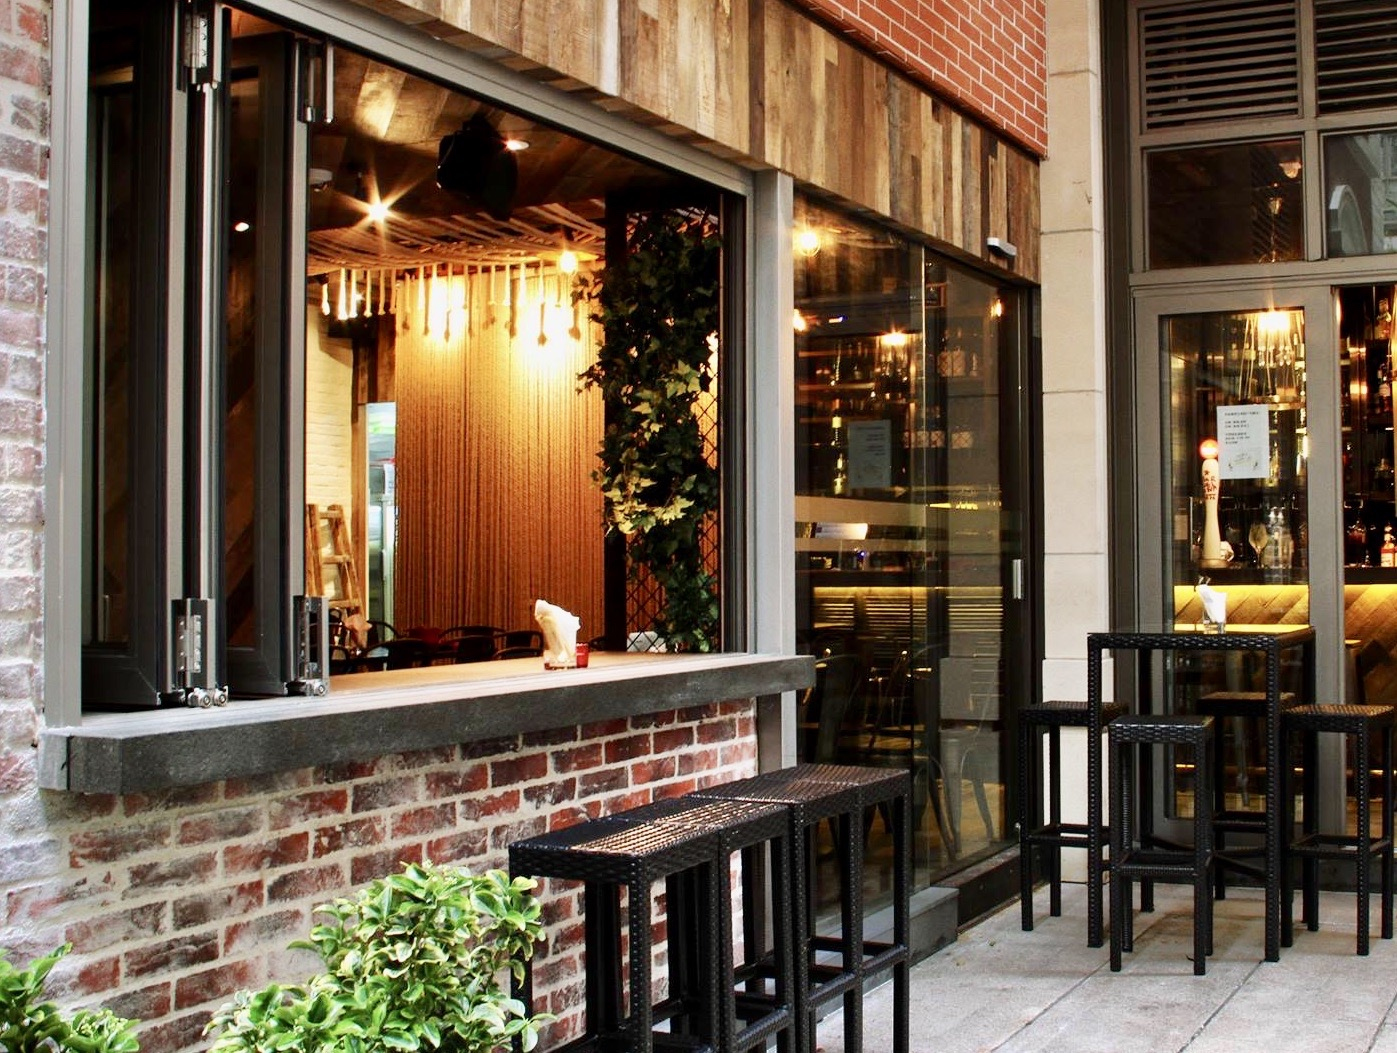 Hong Kong Hip Restaurant Bar for Lease with Licence